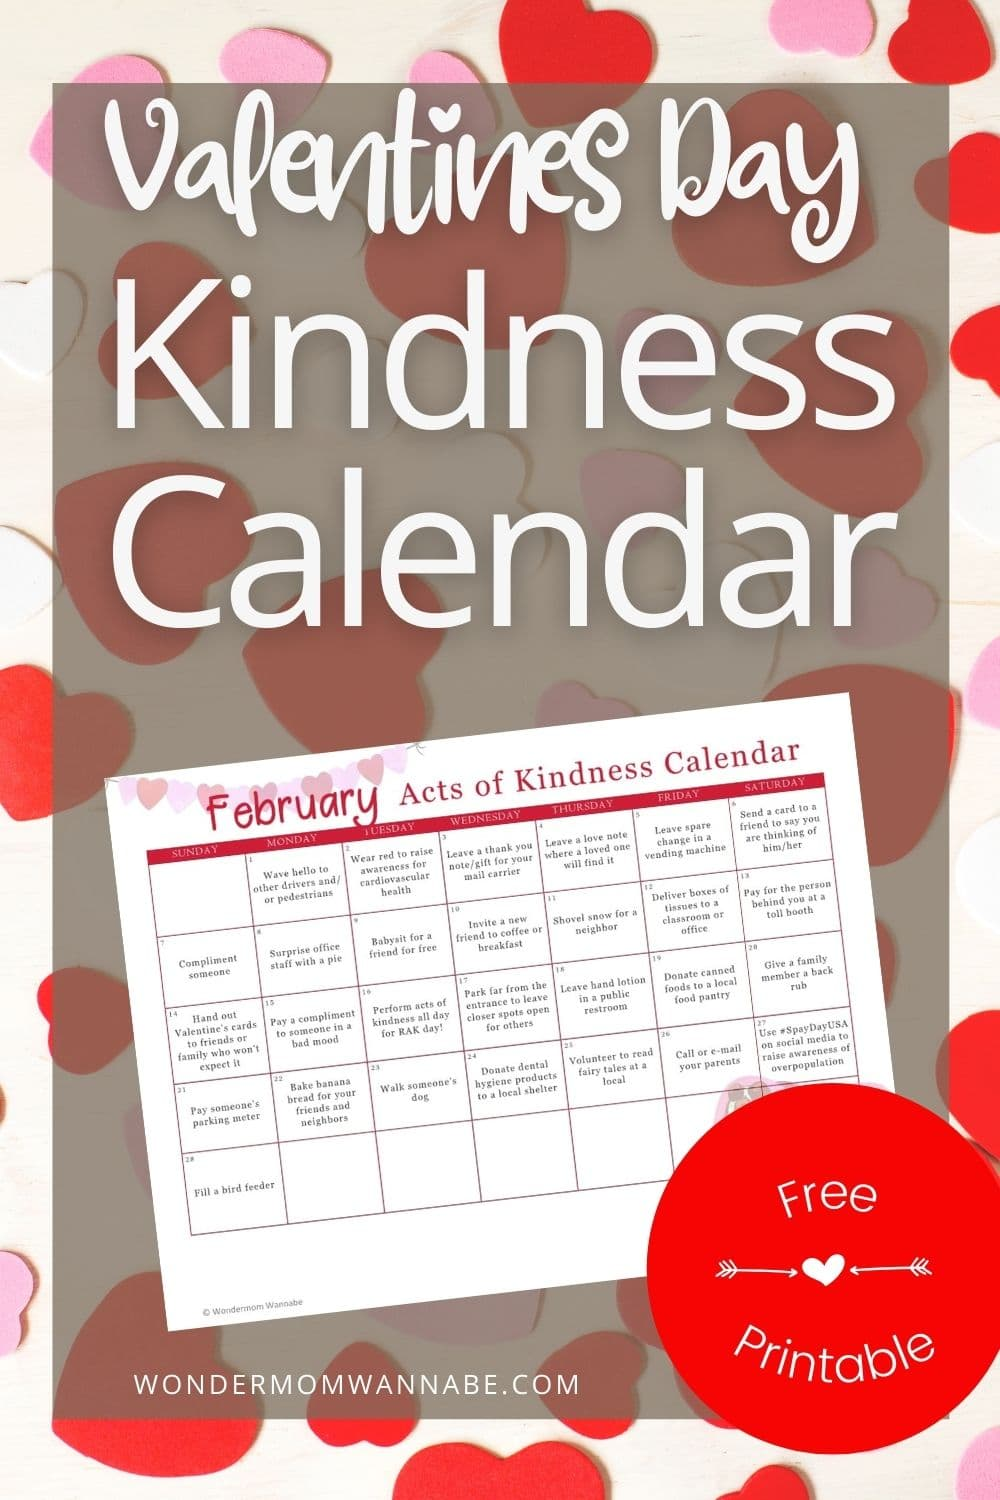 Start February off with an acts of kindness calendar. Many of the kindness acts are tied to the month's theme and unique February holidays. #printables #freeprintables #actsofkindness #randomactsofkindness #RAKCalendar via @wondermomwannab